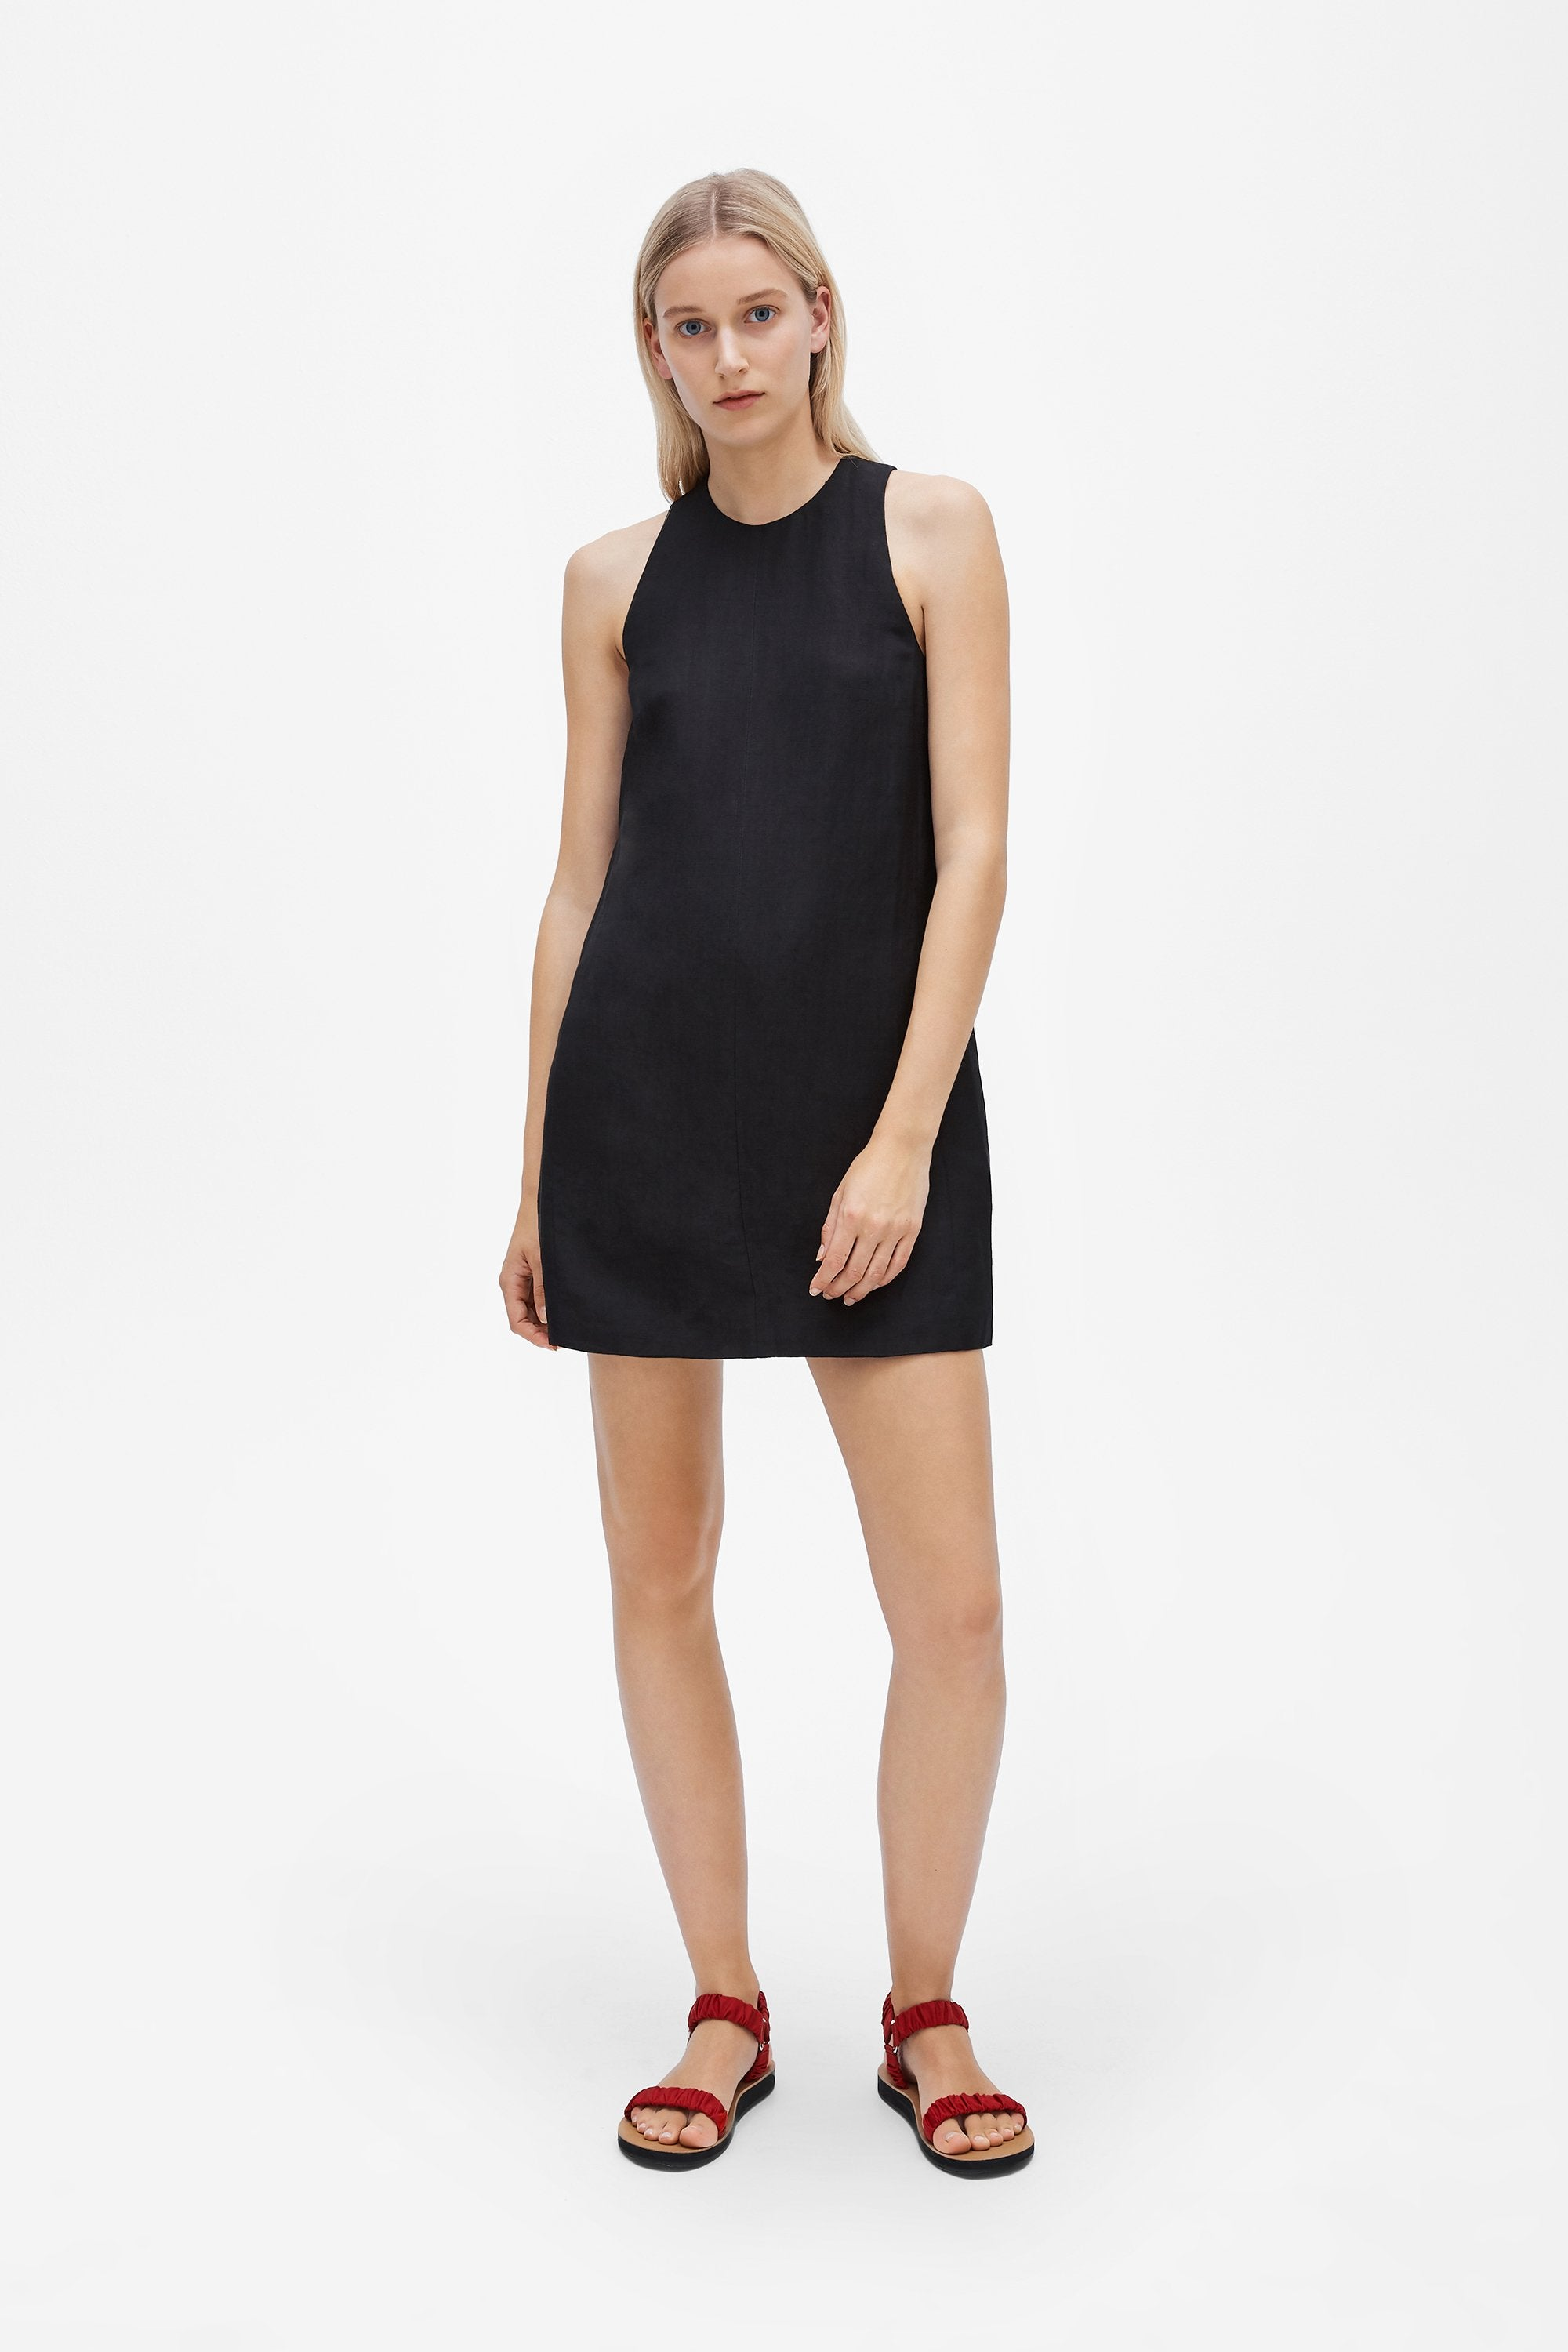 Crew neck mini dress - Linen blend - Black - Resortwear dress - Her Line